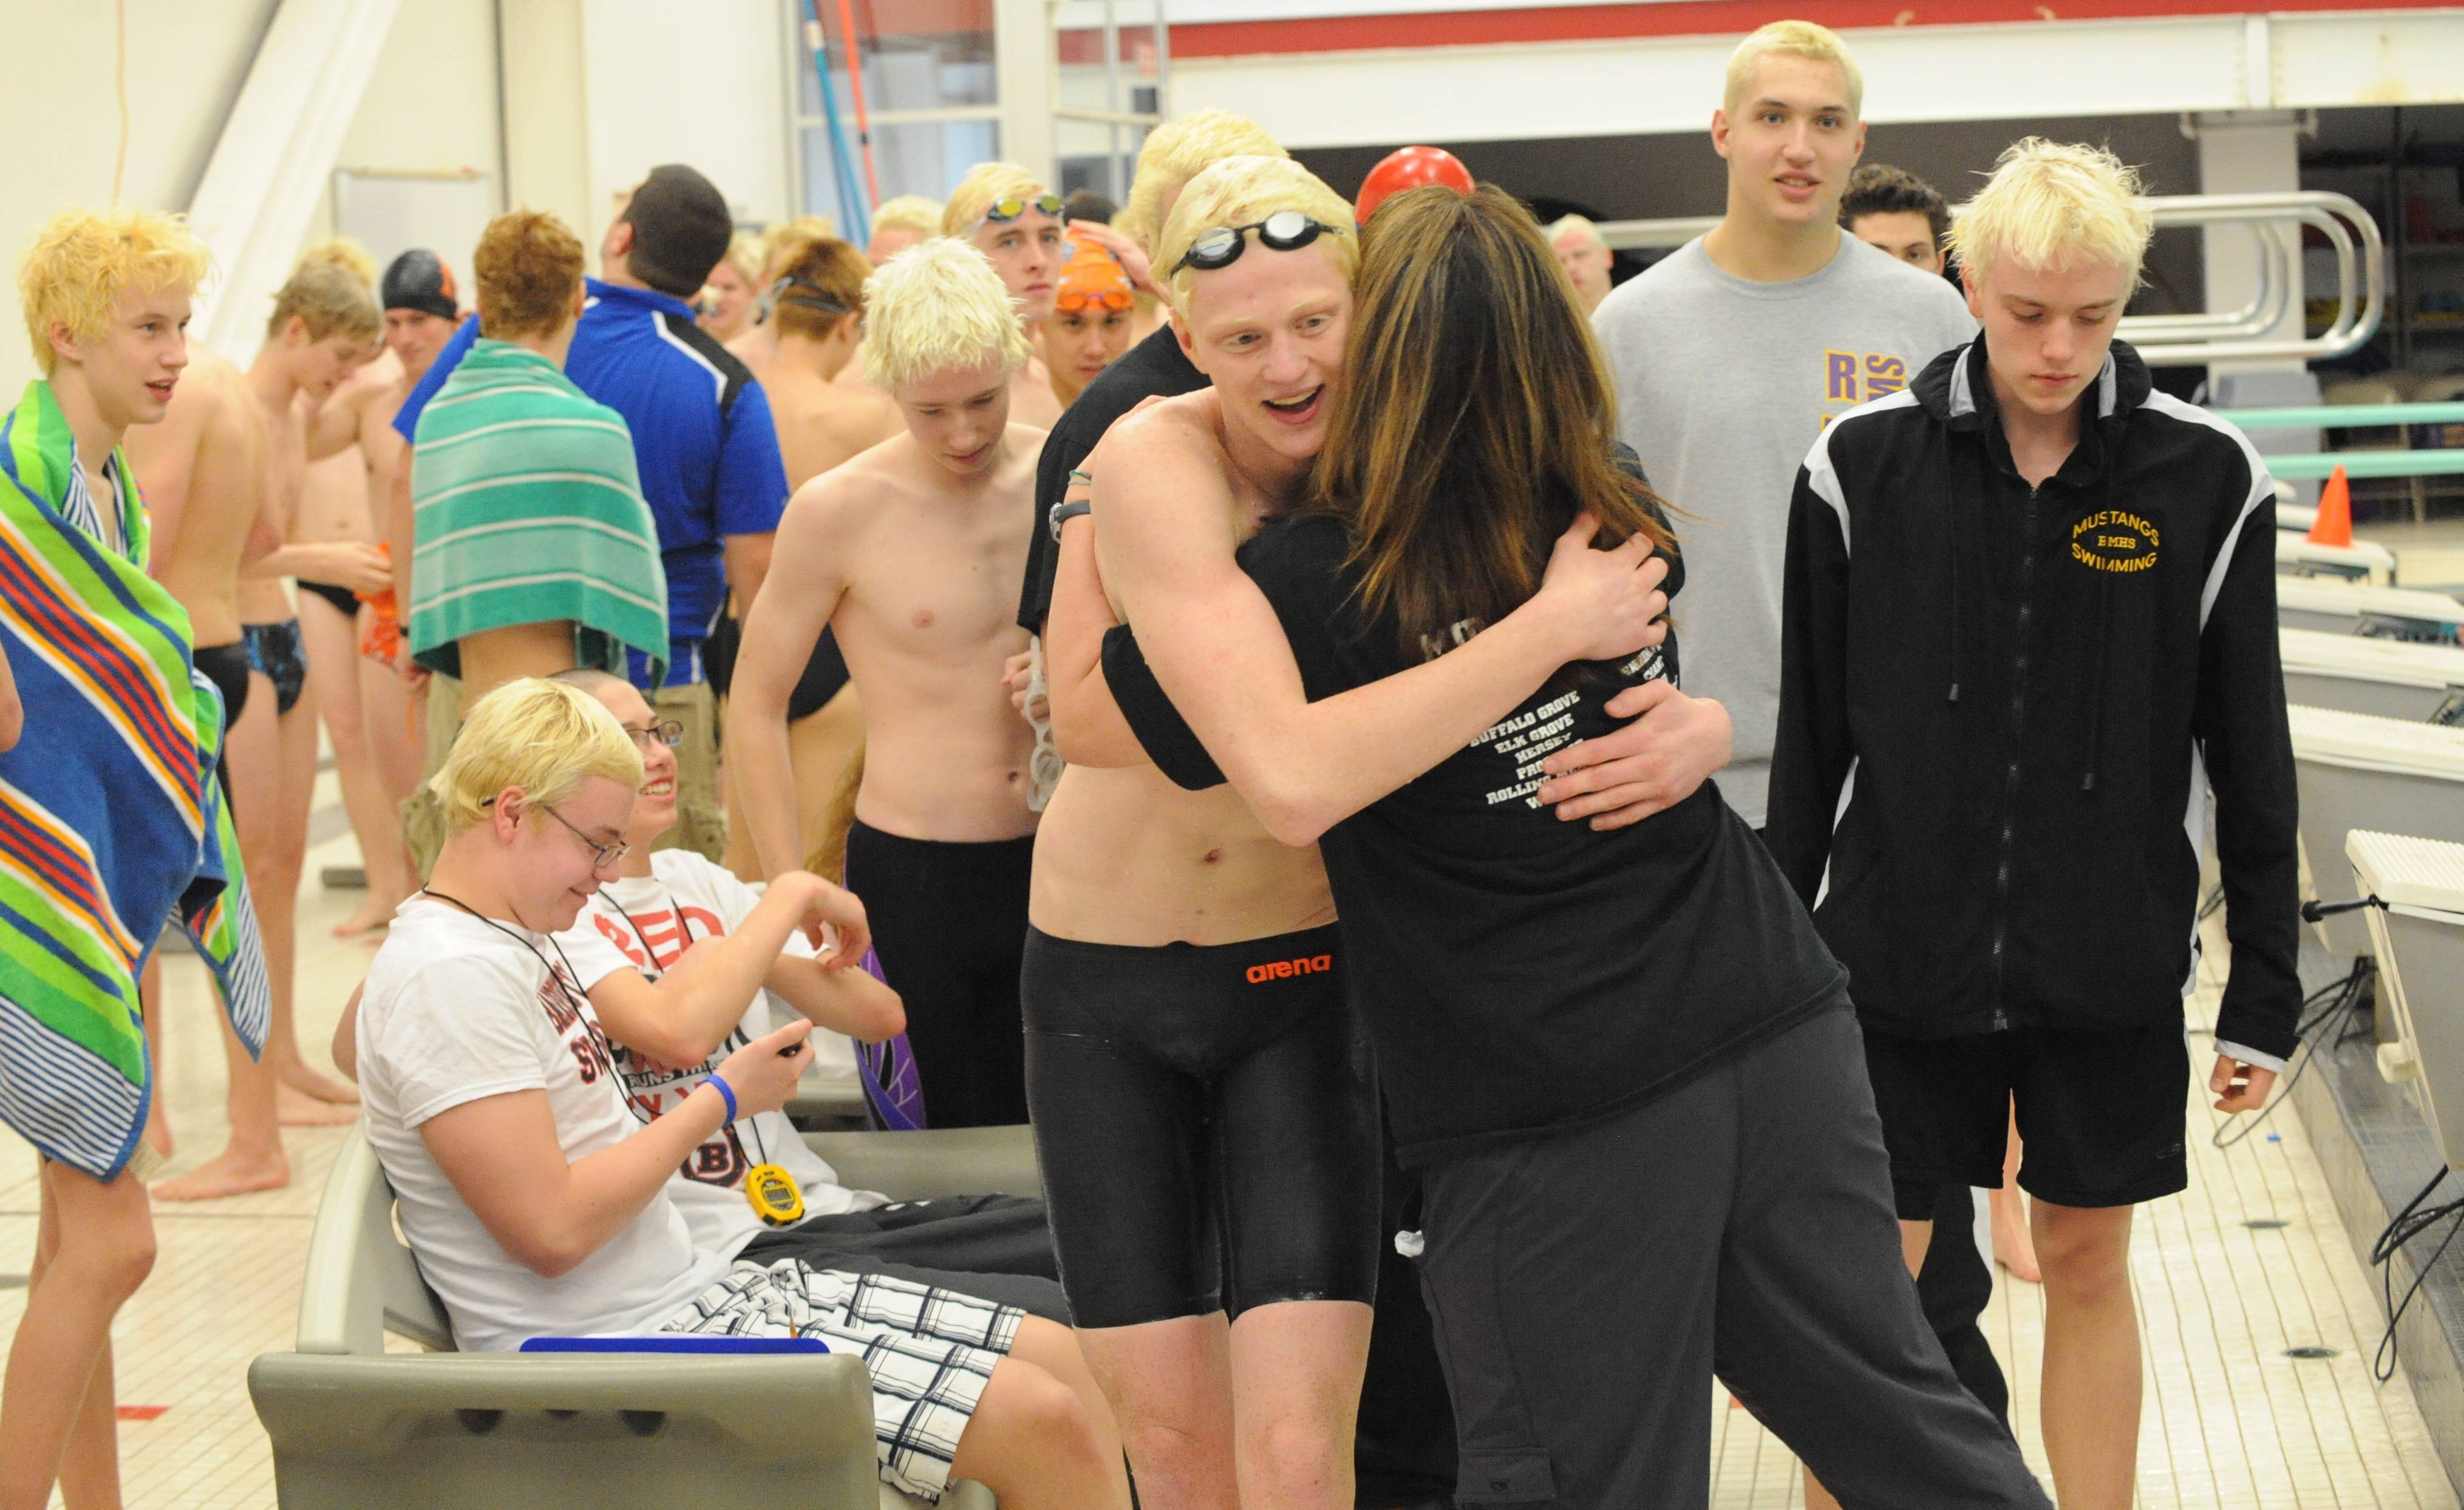 Rolling Meadows junior Jake Barson, left, and coach Monika Chiappetta hug it out after Barson's victory in the 100-yard breaststroke in Saturday's MSL meet.